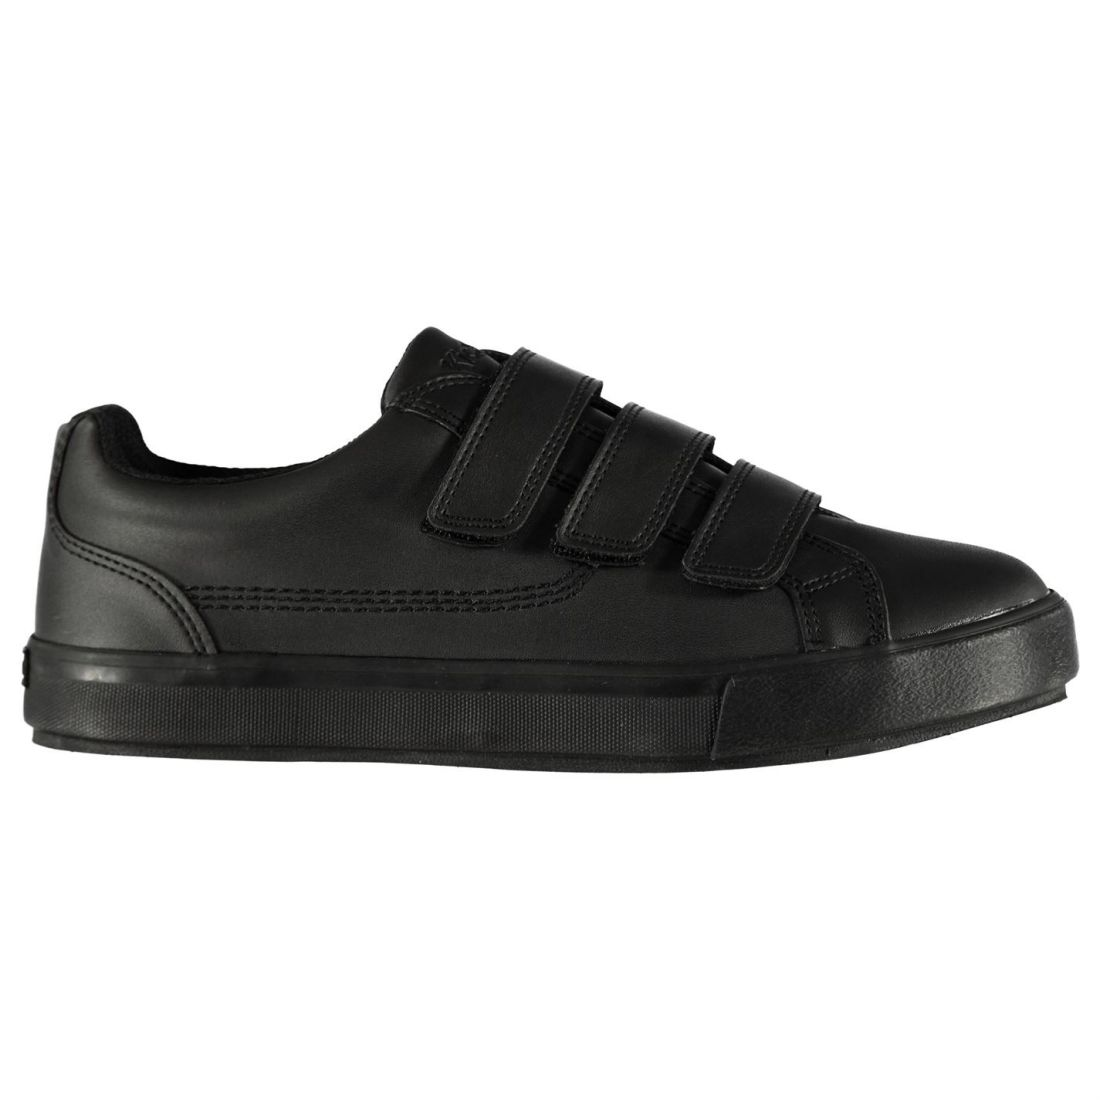 85d06f1ff5 Details about Kickers Mens Tovni Trainers Low Padded Tongue Touch and Close